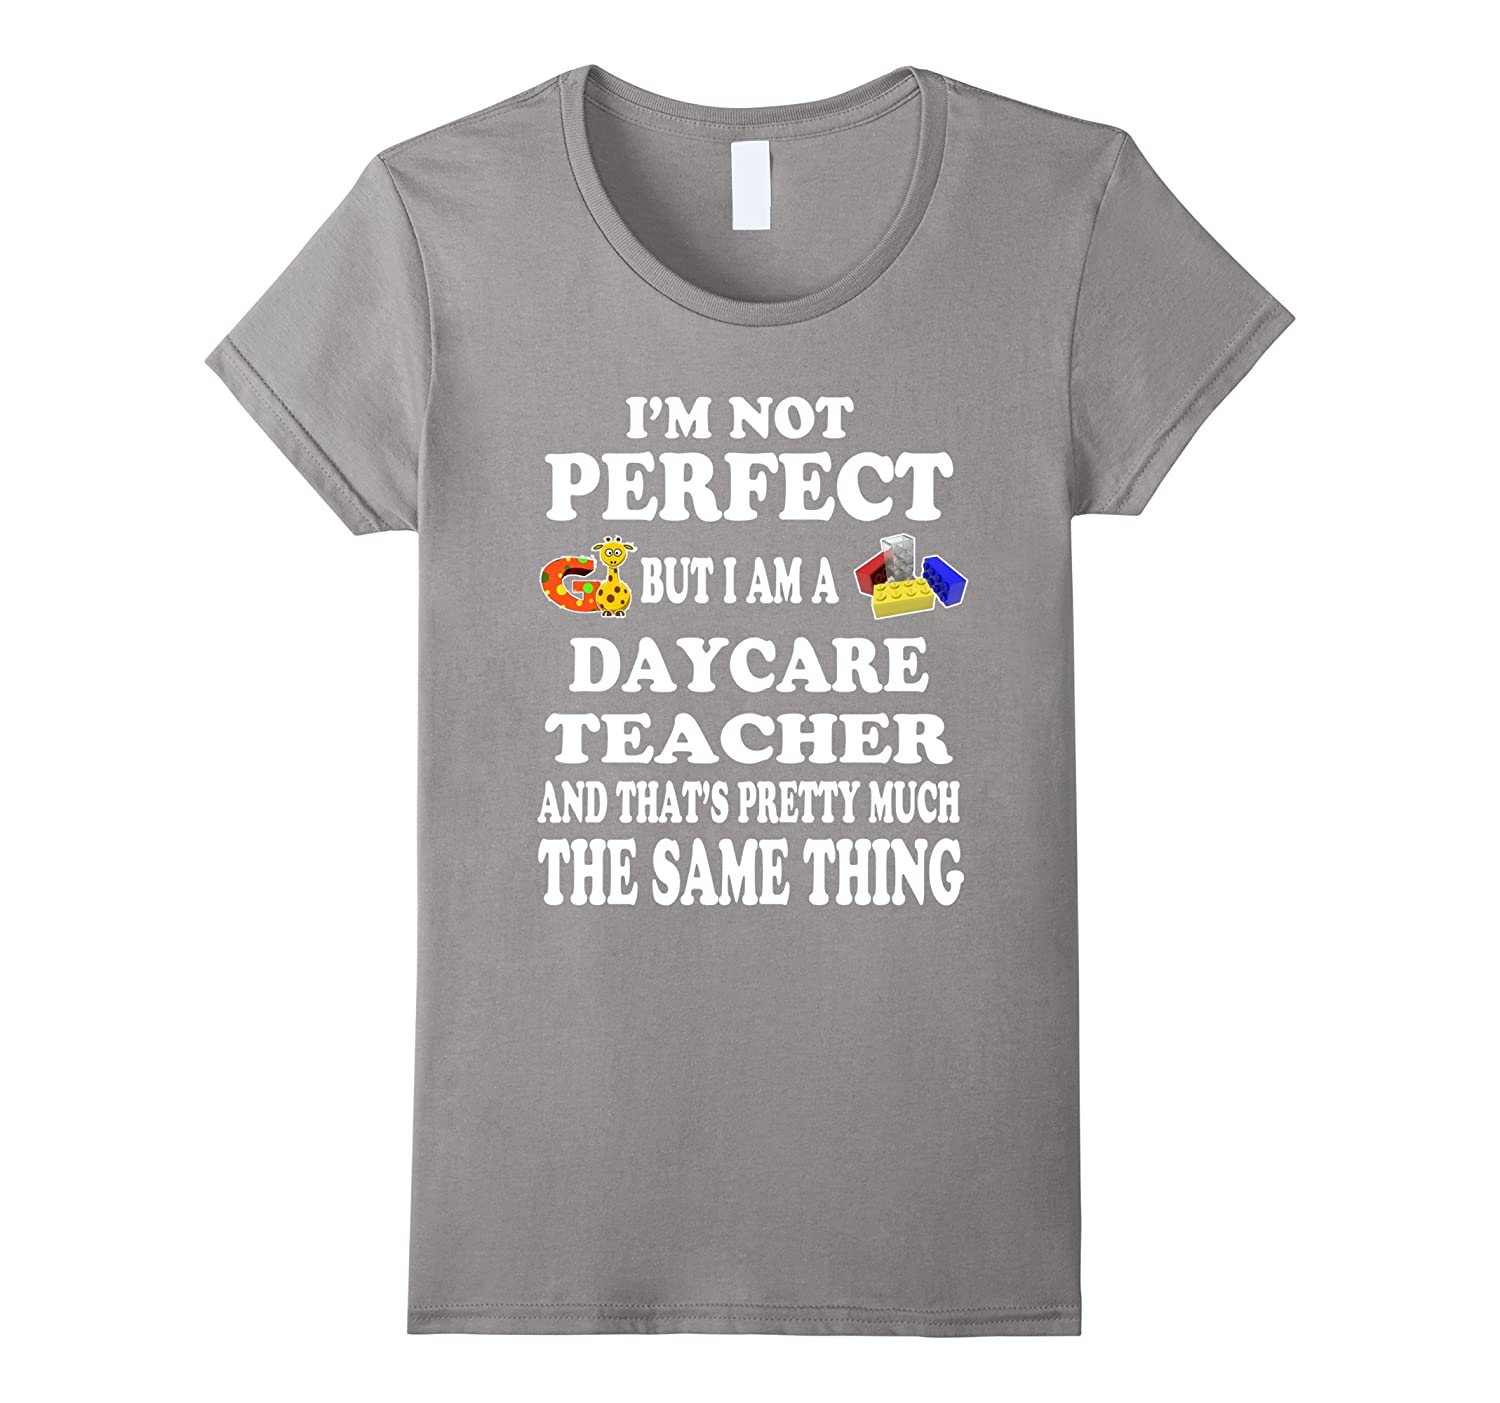 Daycare Teacher T Shirt Gift Idea Early Childcare Education